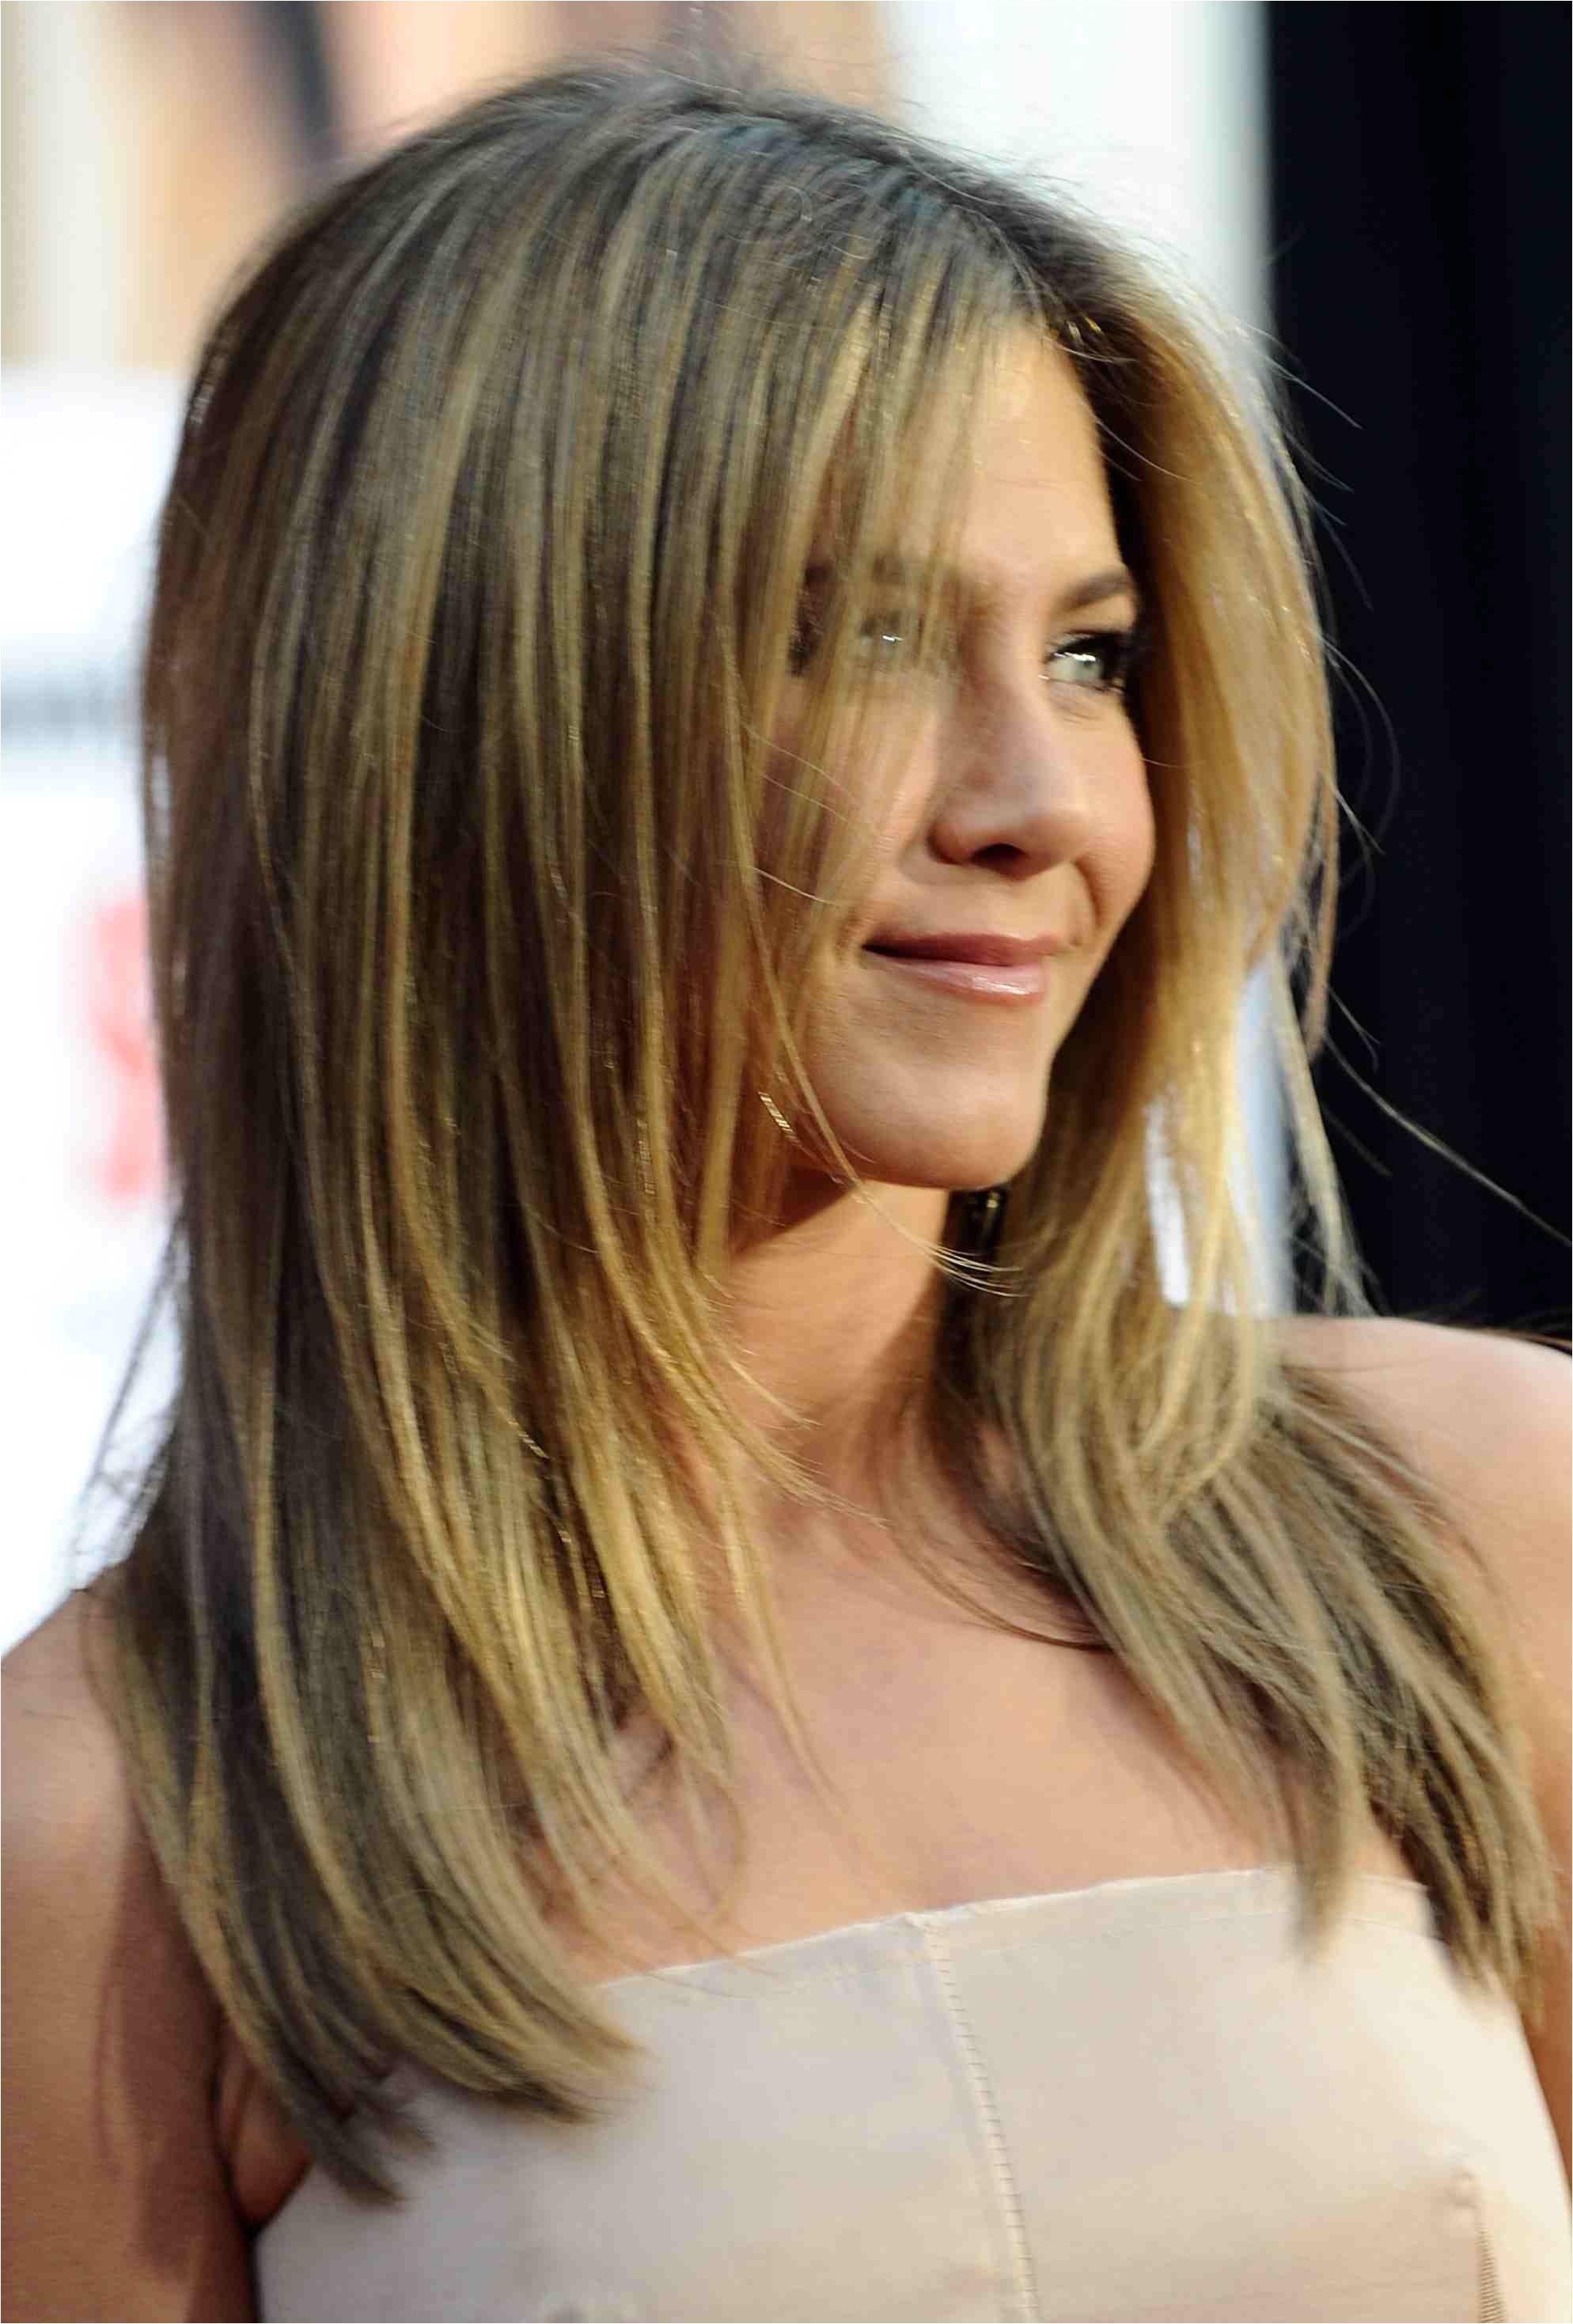 jen aniston darker long hair 56a0802a3df78cafdaa